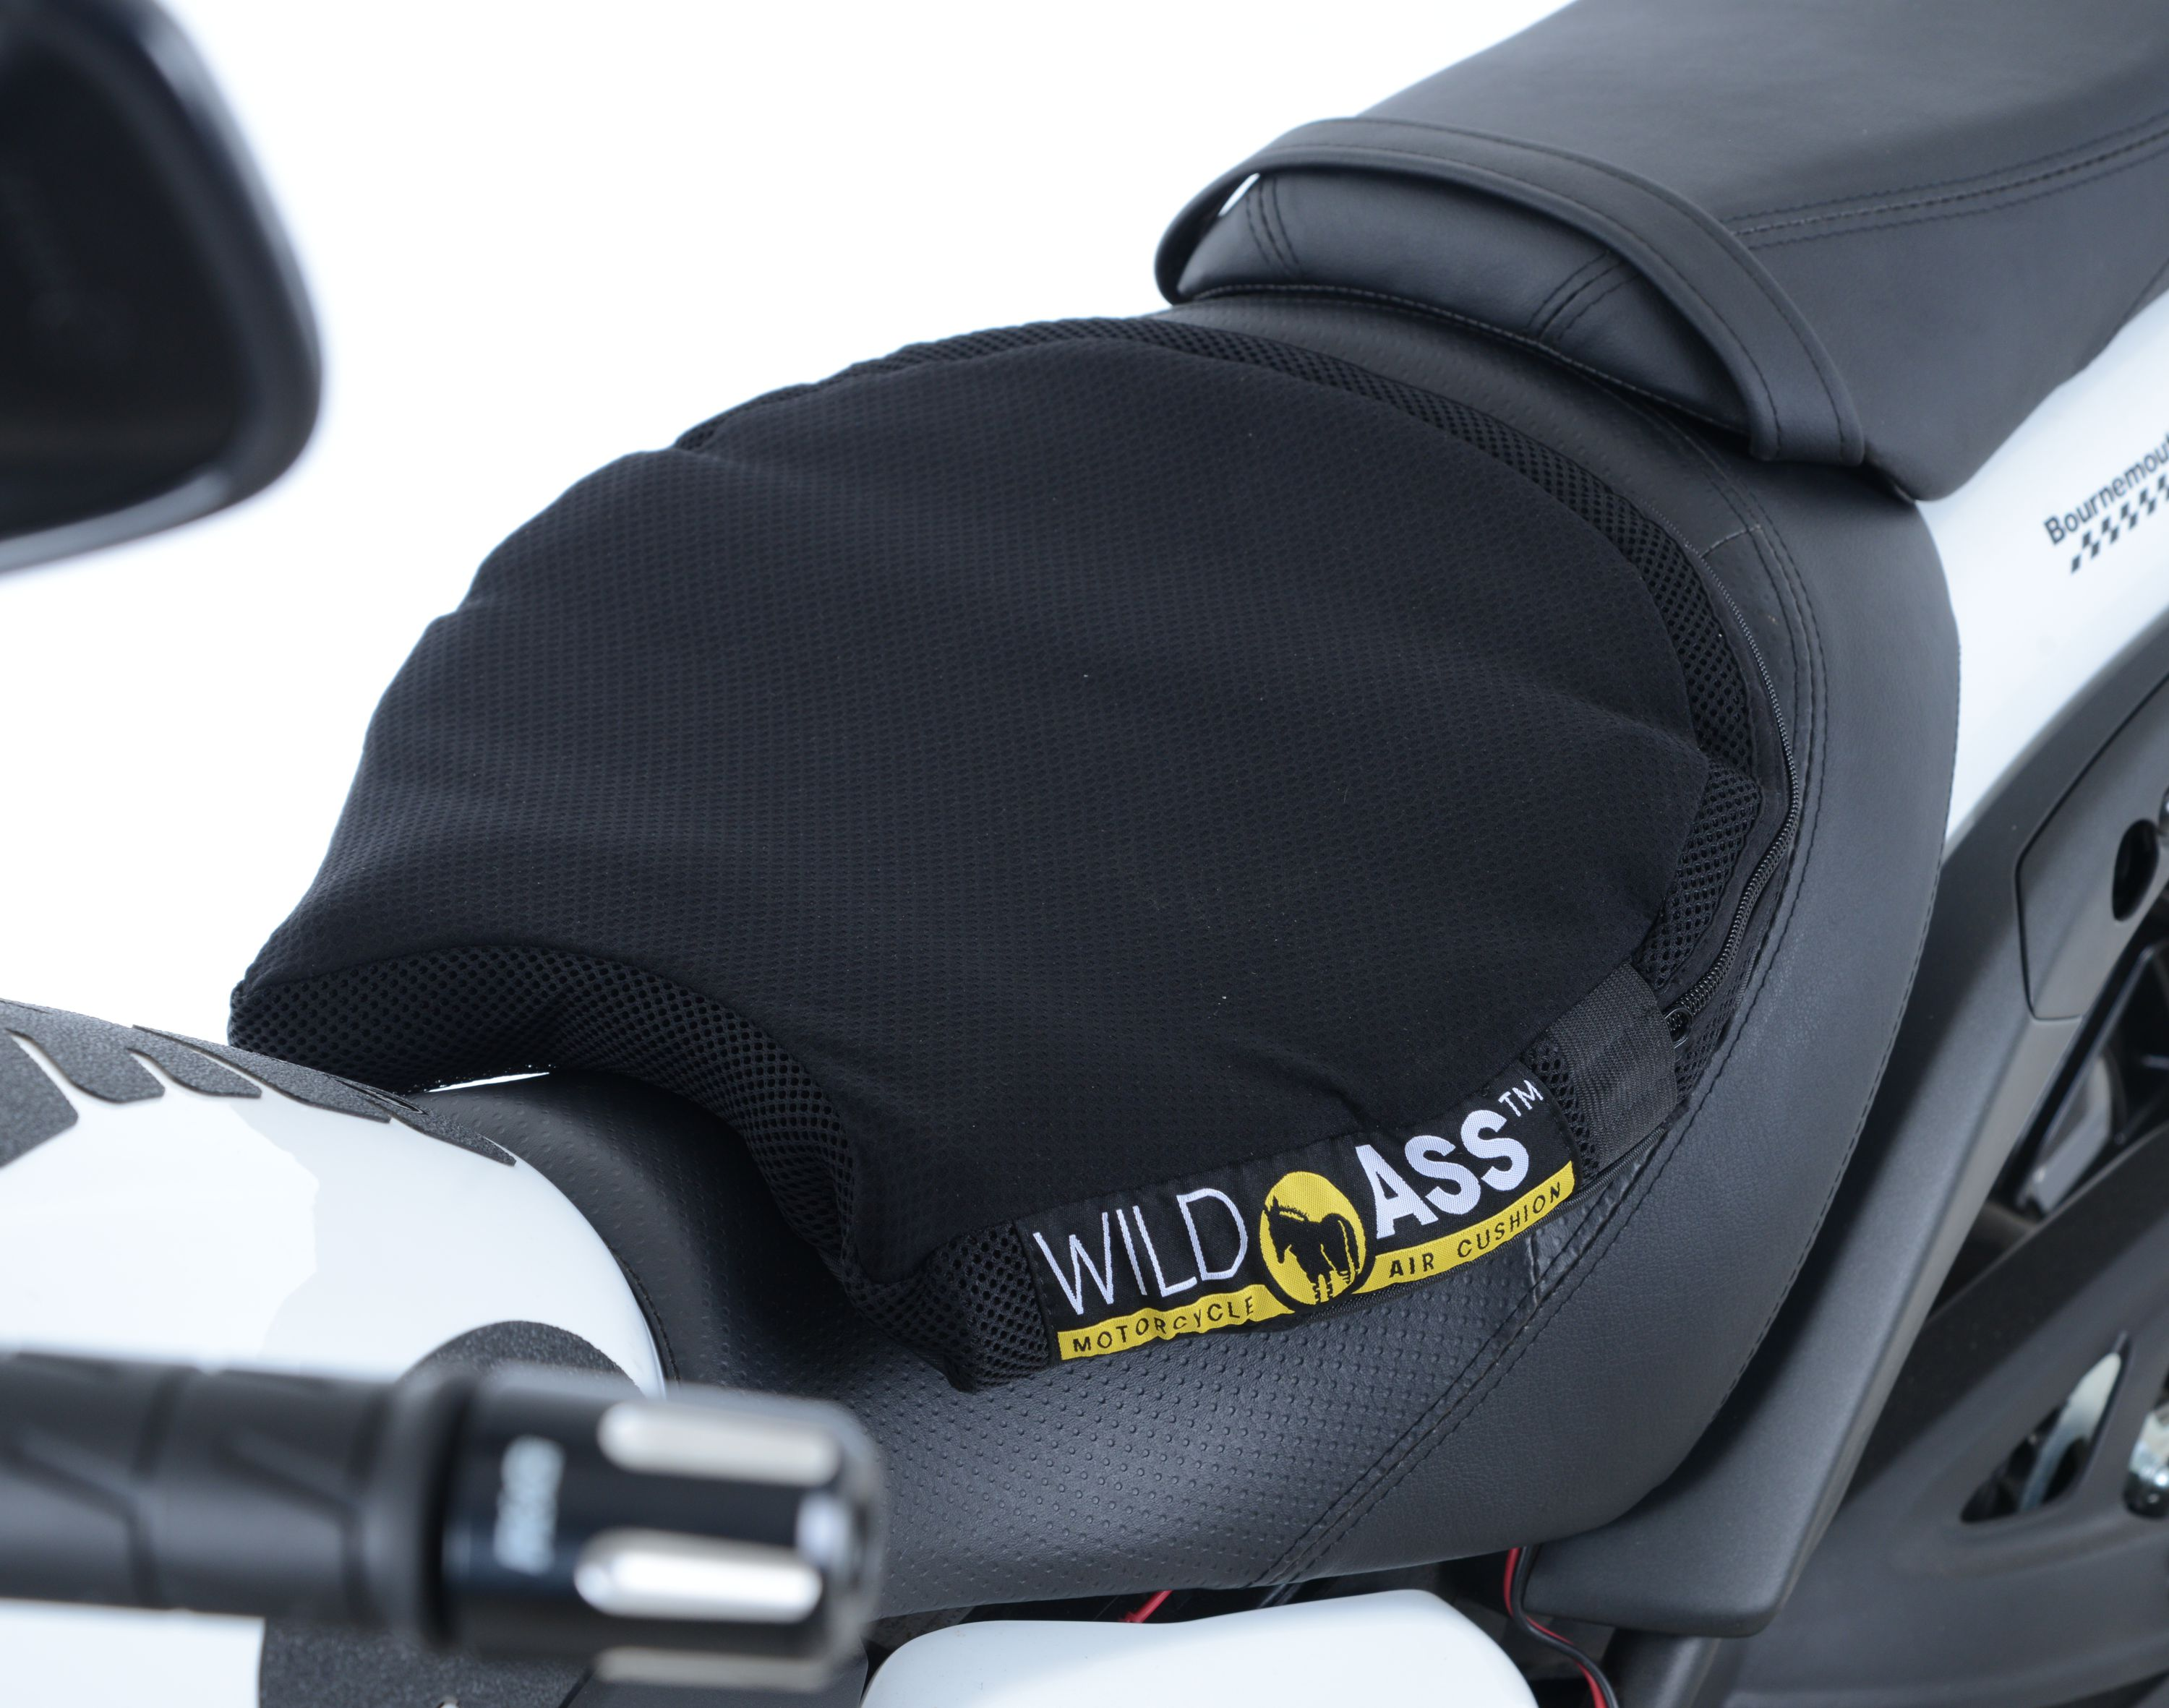 R G Goes Wild With New Seat Cushions